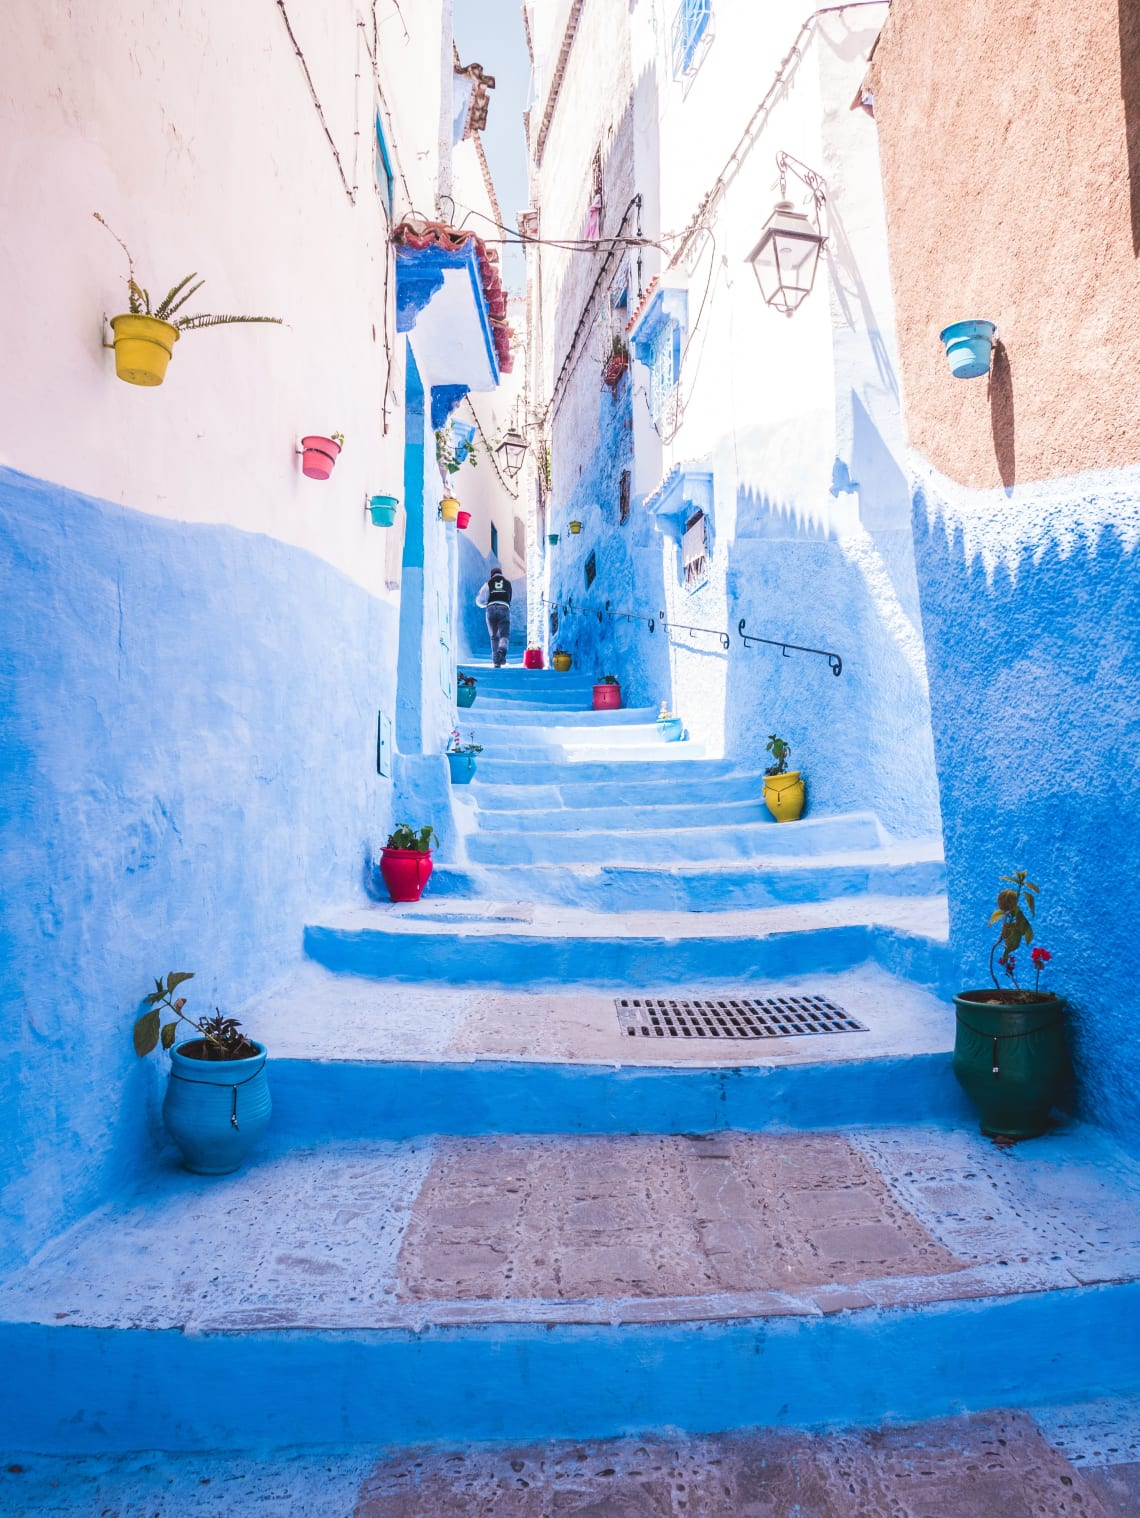 The blue city, Morocco.